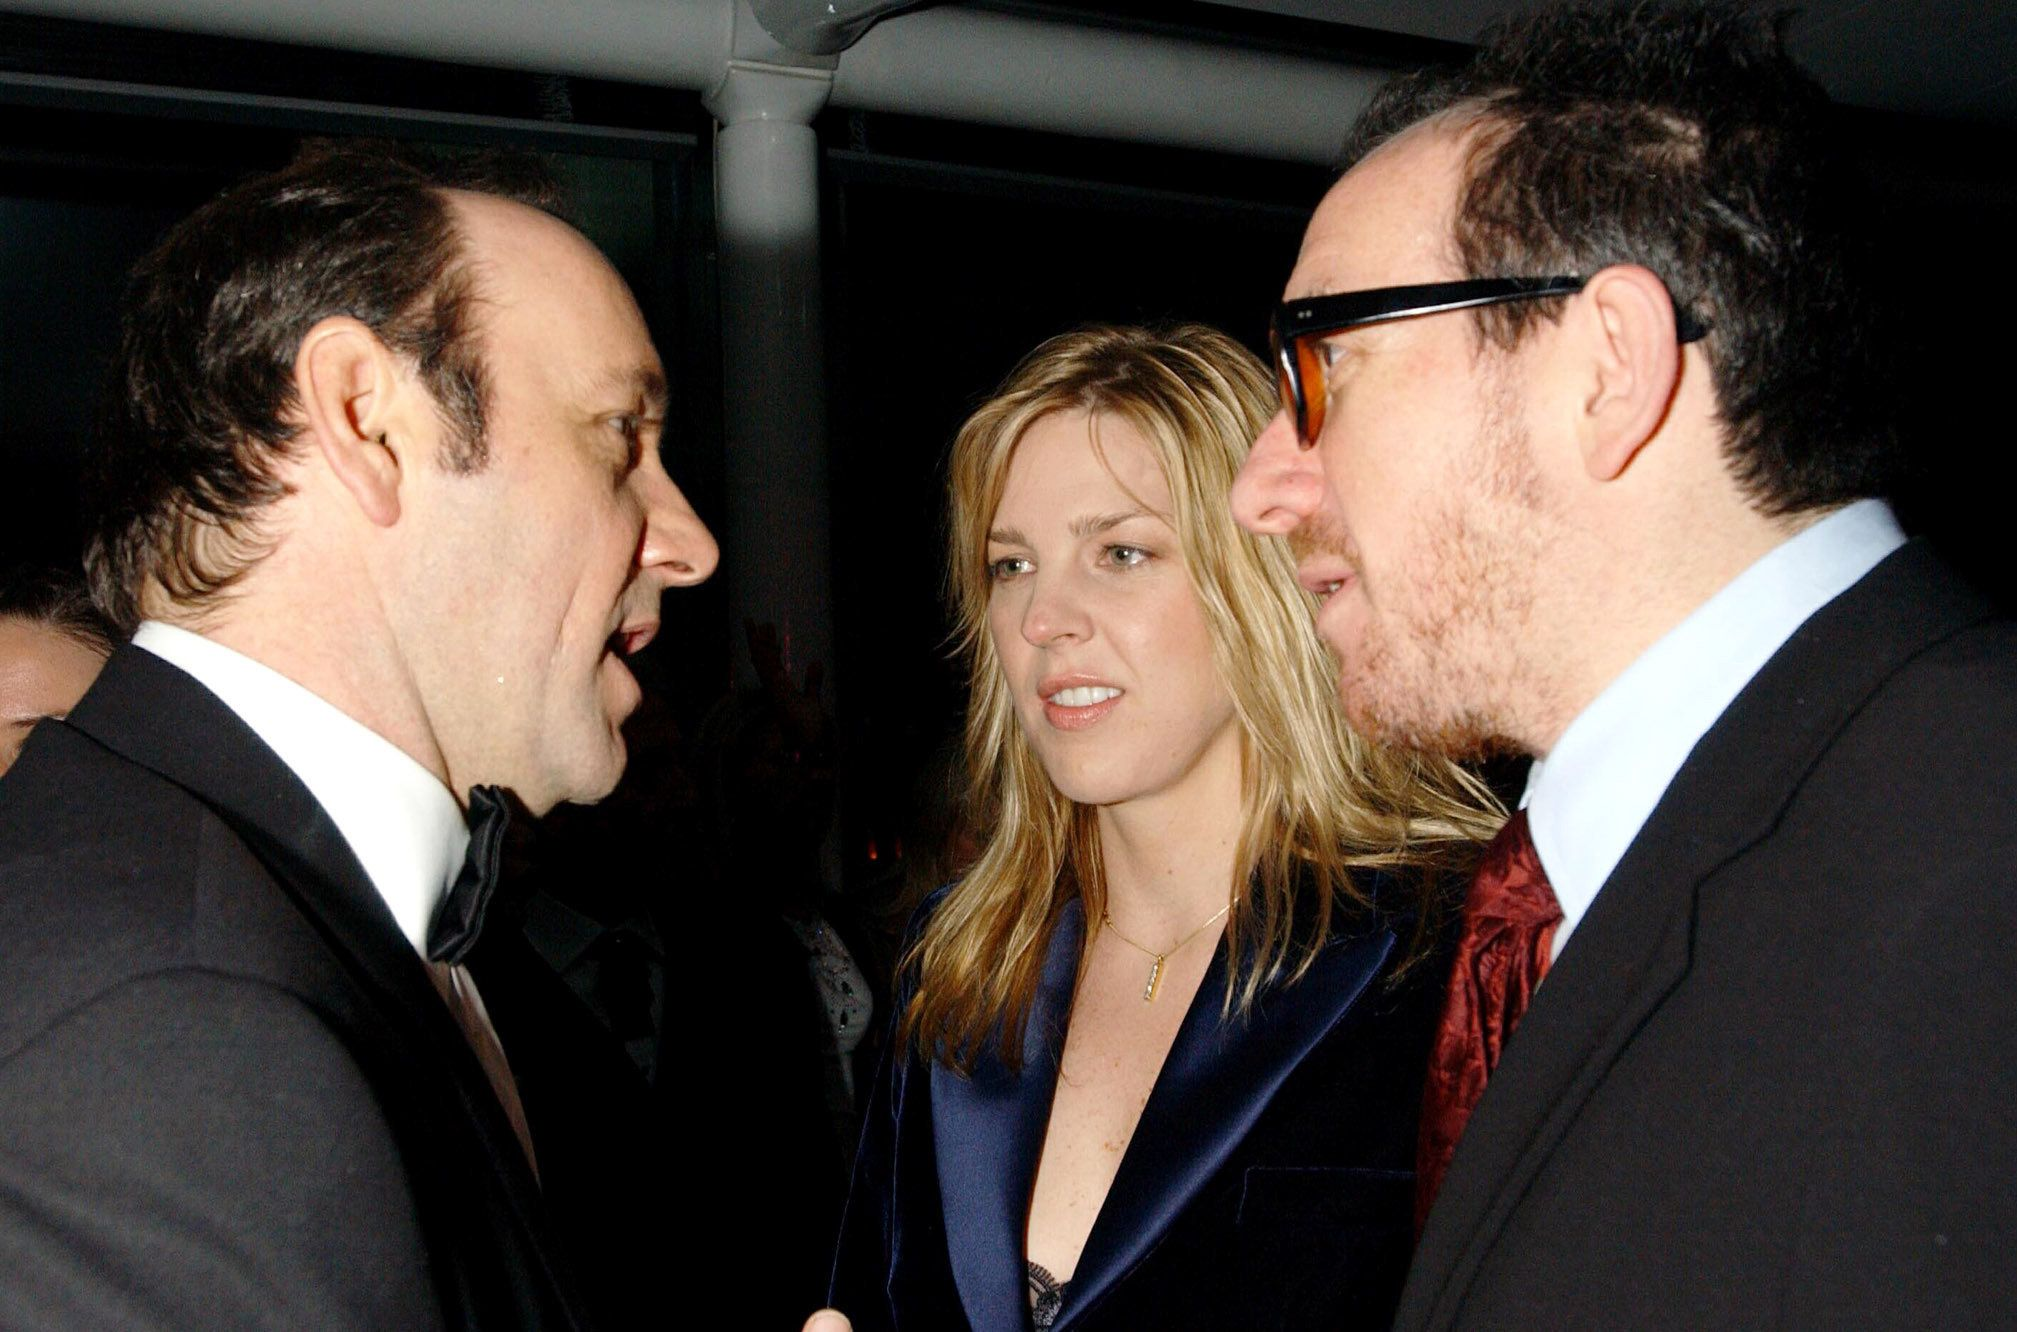 Kevin Spacey (left) at a party in London during his time as artistic director of the Old Vic